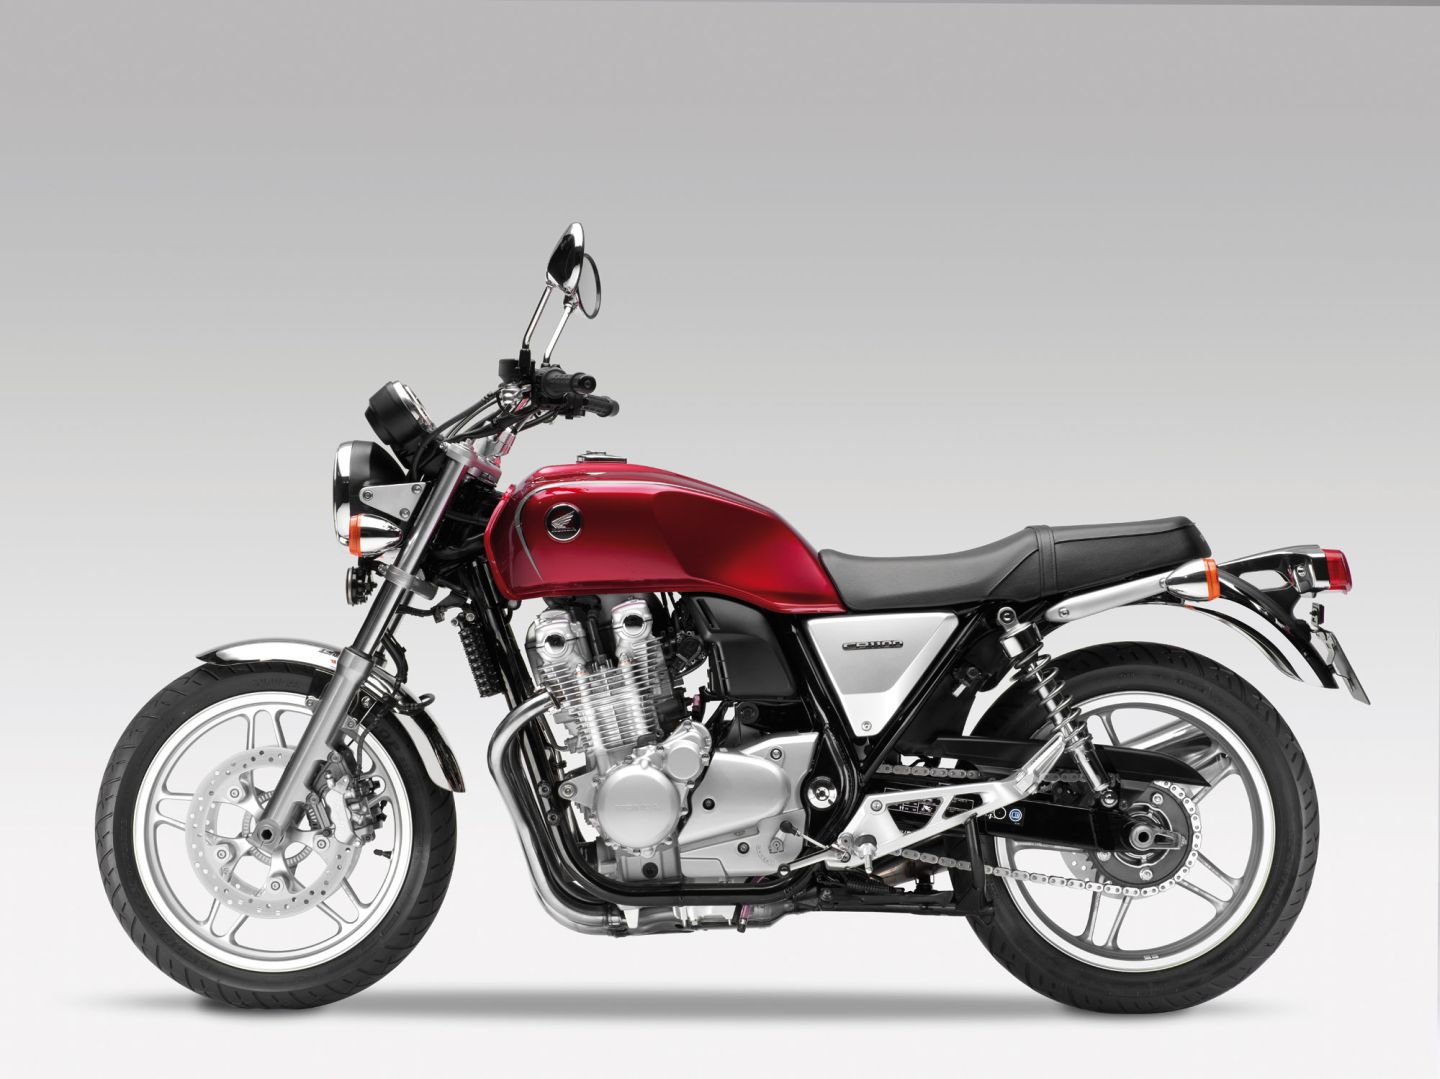 2013 Honda Cb1100 Screams Classic Attitude Autoevolution